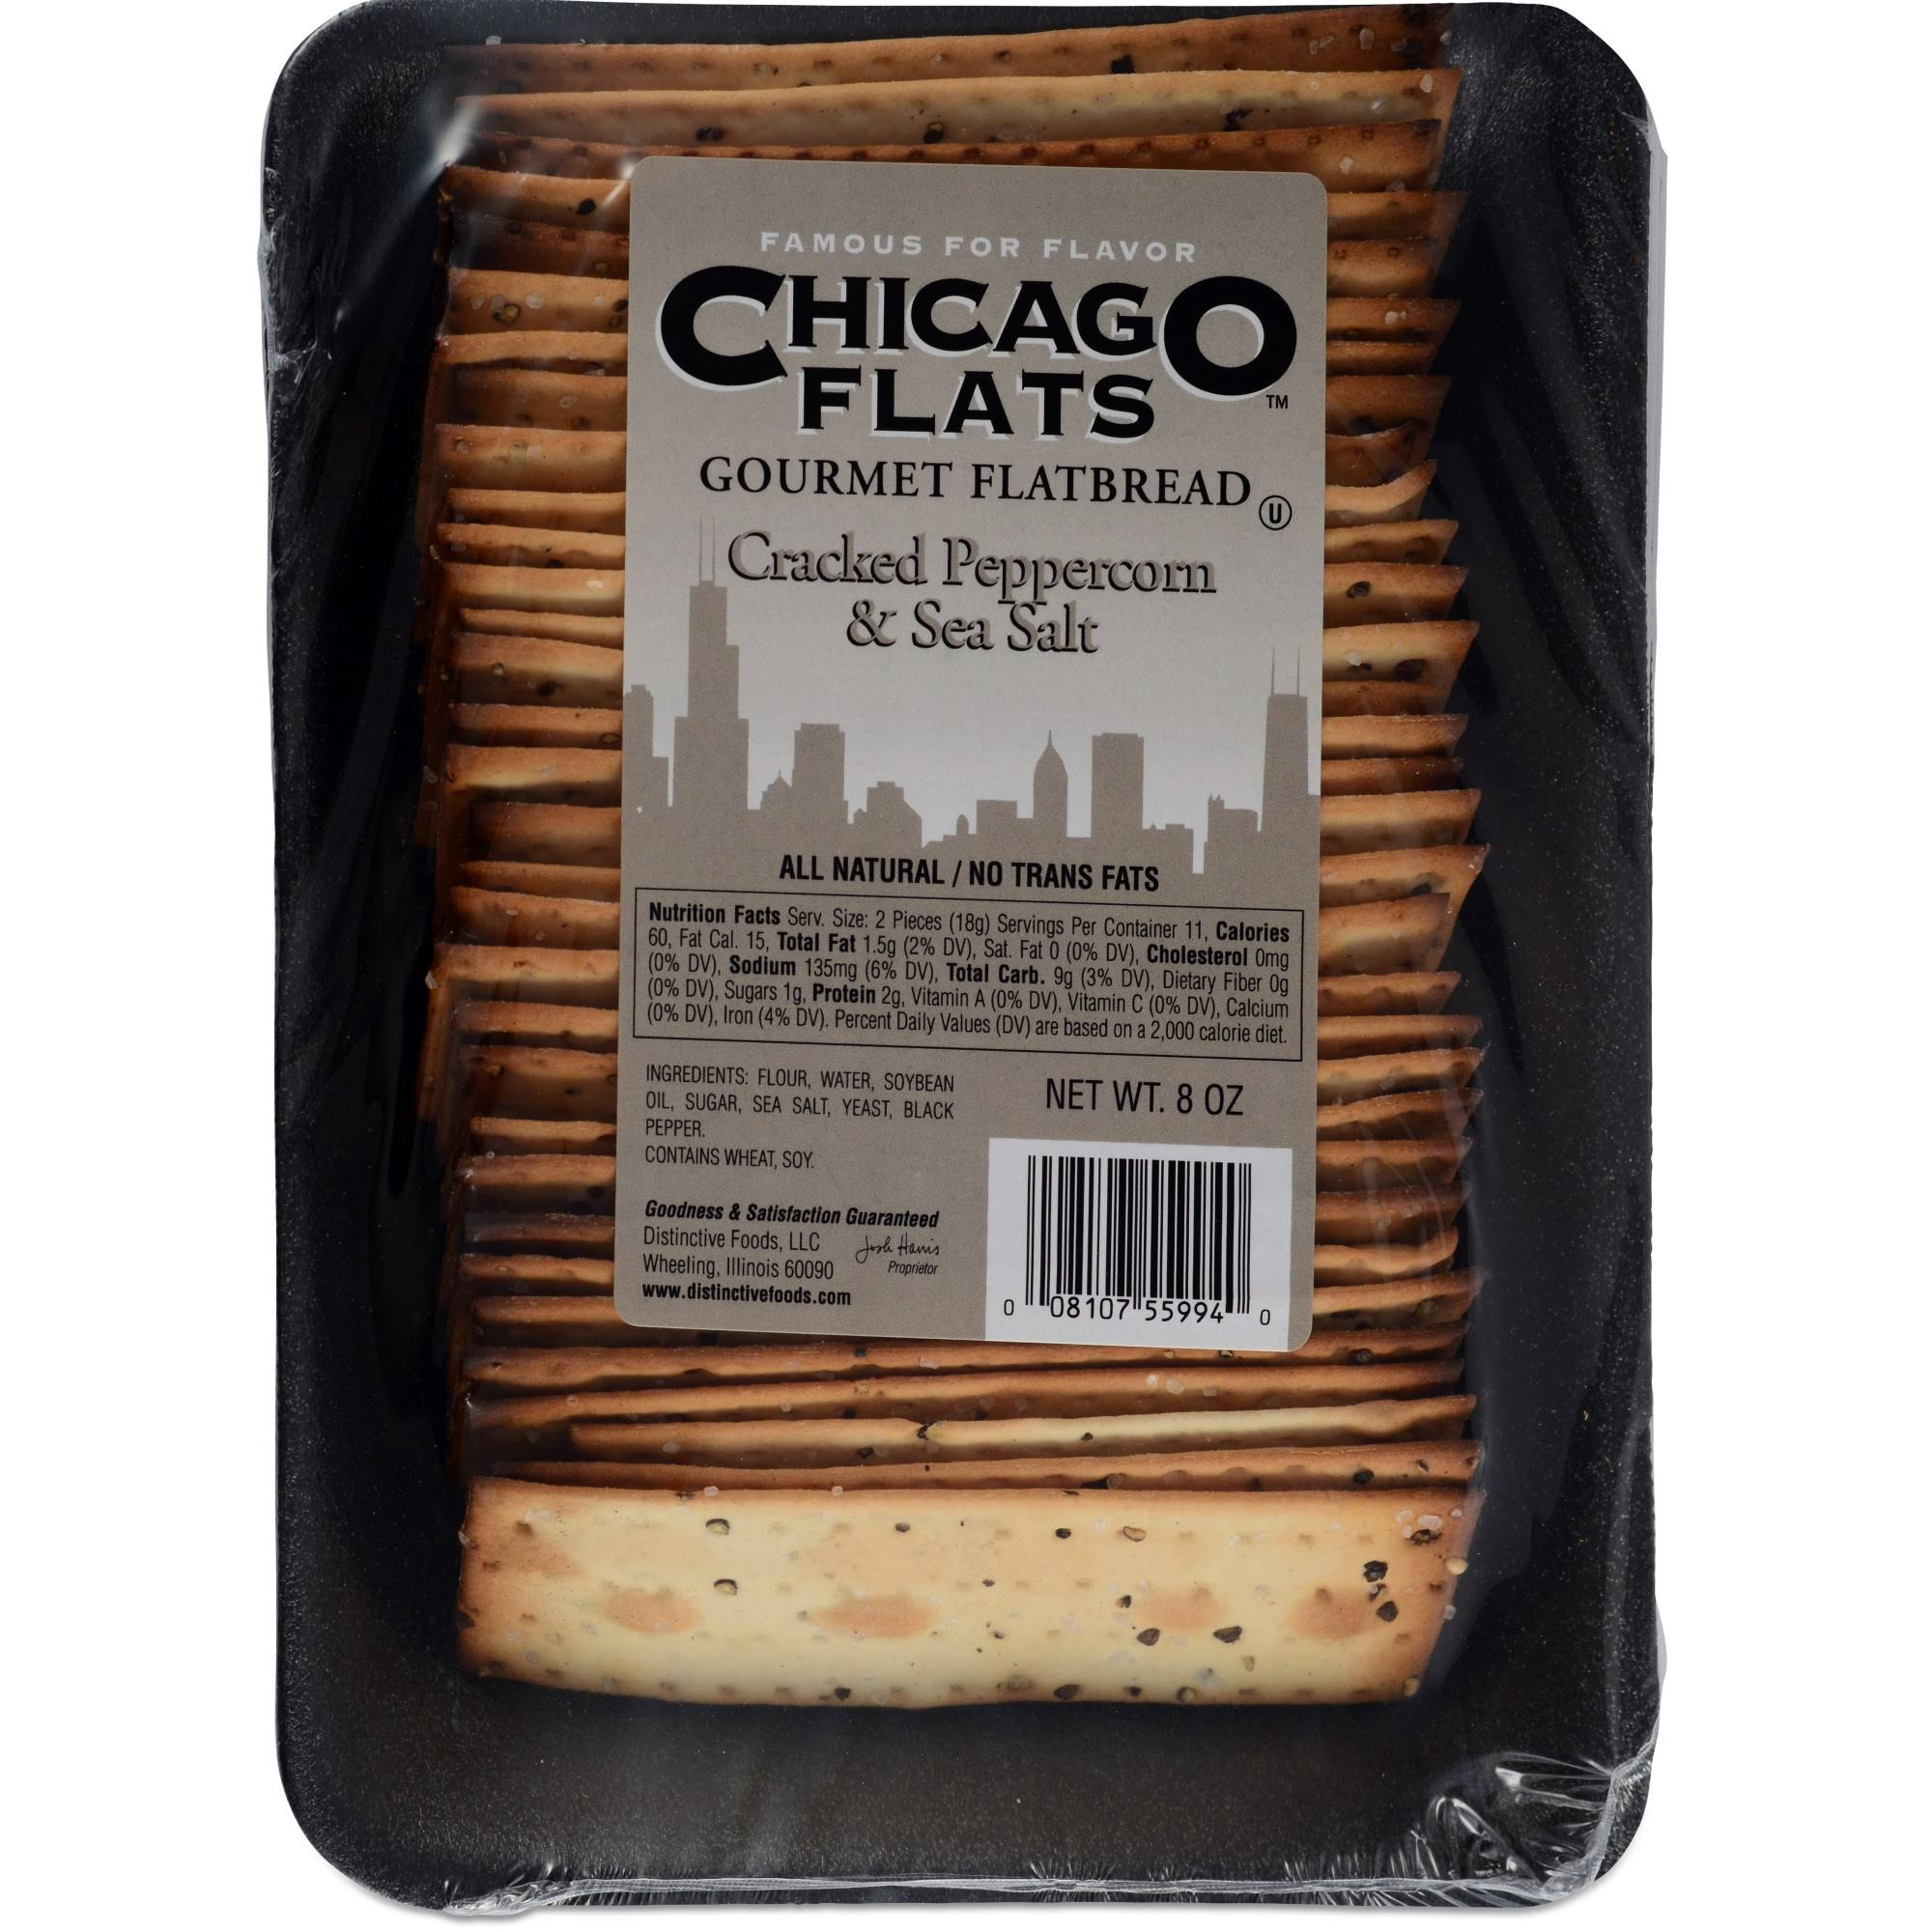 Chicago Flats Flatbread, Gourmet, Cracked Peppercorn & Sea Salt - 8 oz